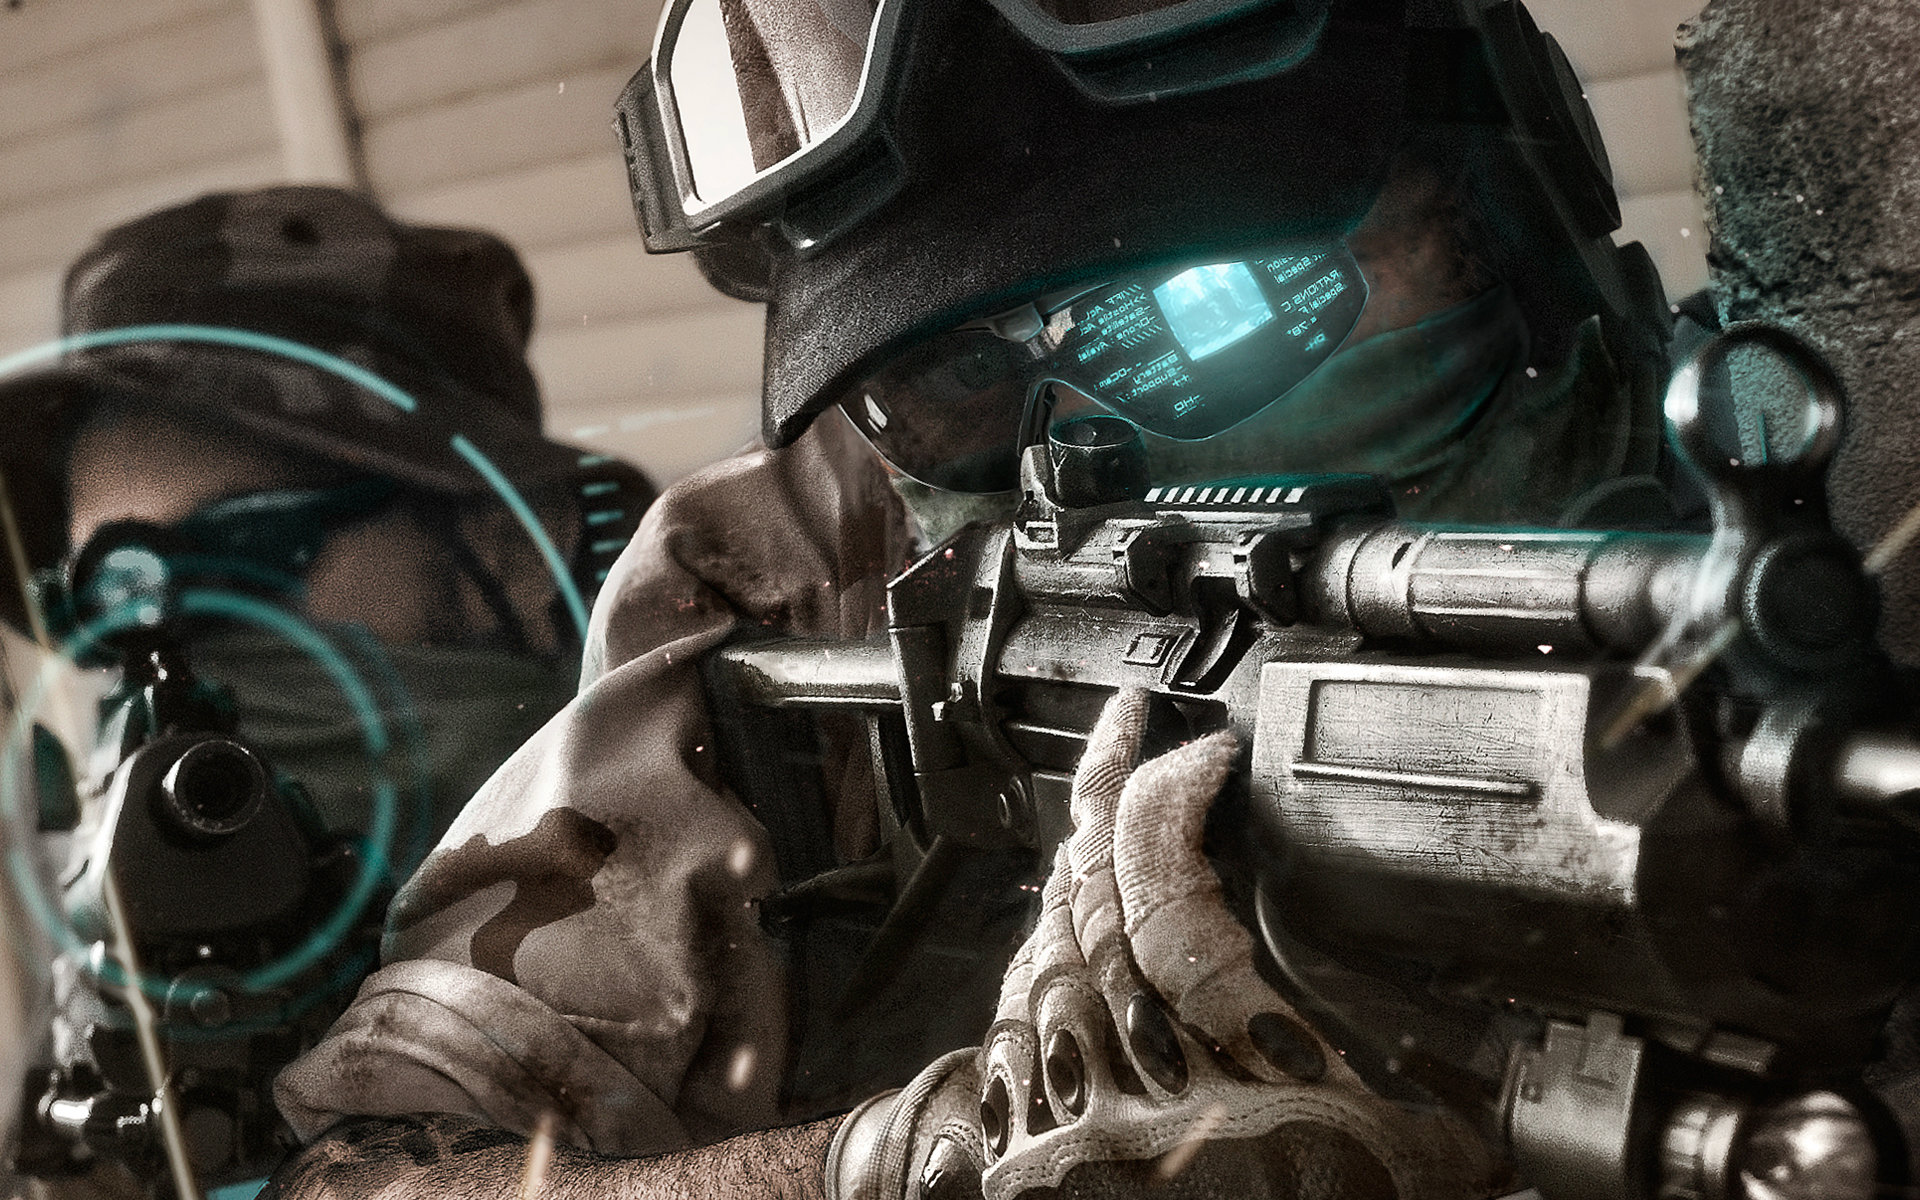 Full Hd Game Wallpapers Action Games Hd Wallpapers - Ghost Recon Future Soldier 4k , HD Wallpaper & Backgrounds